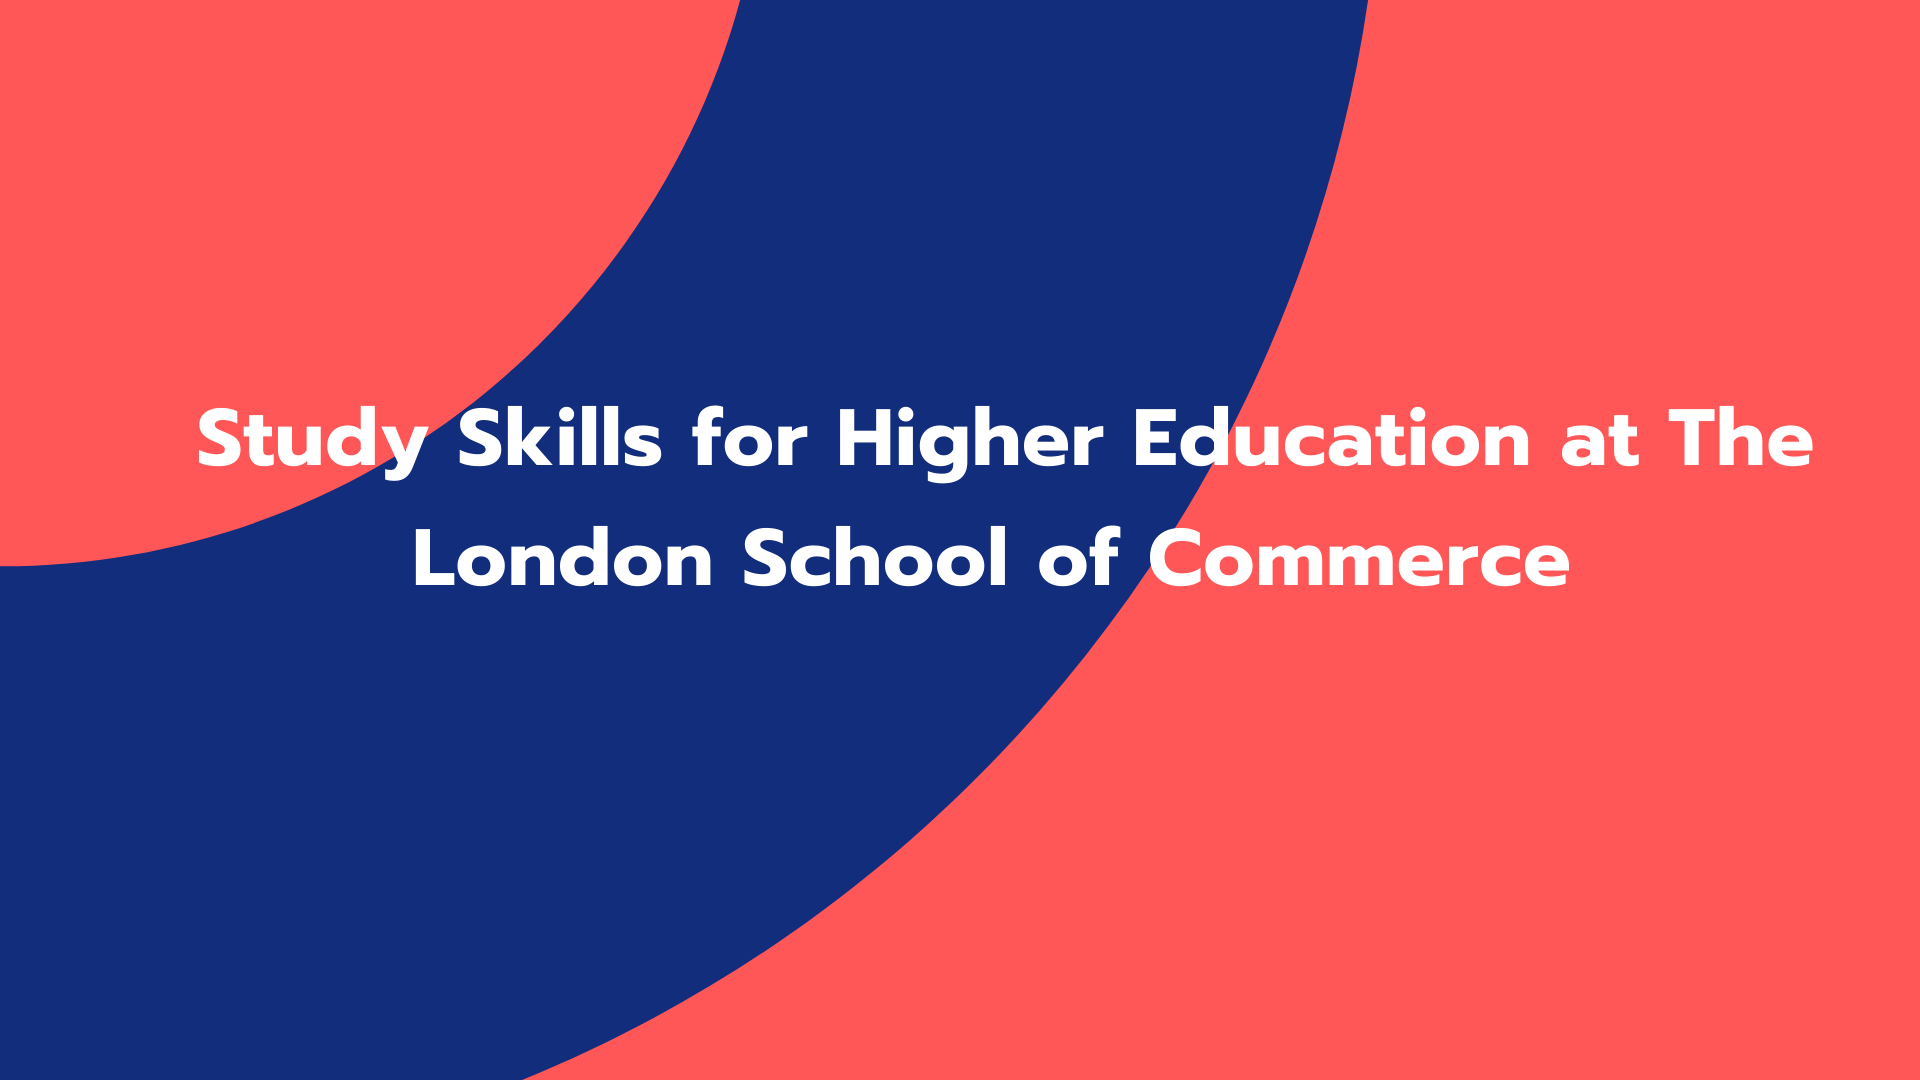 Study Skills for Higher Education at The London School of Commerce